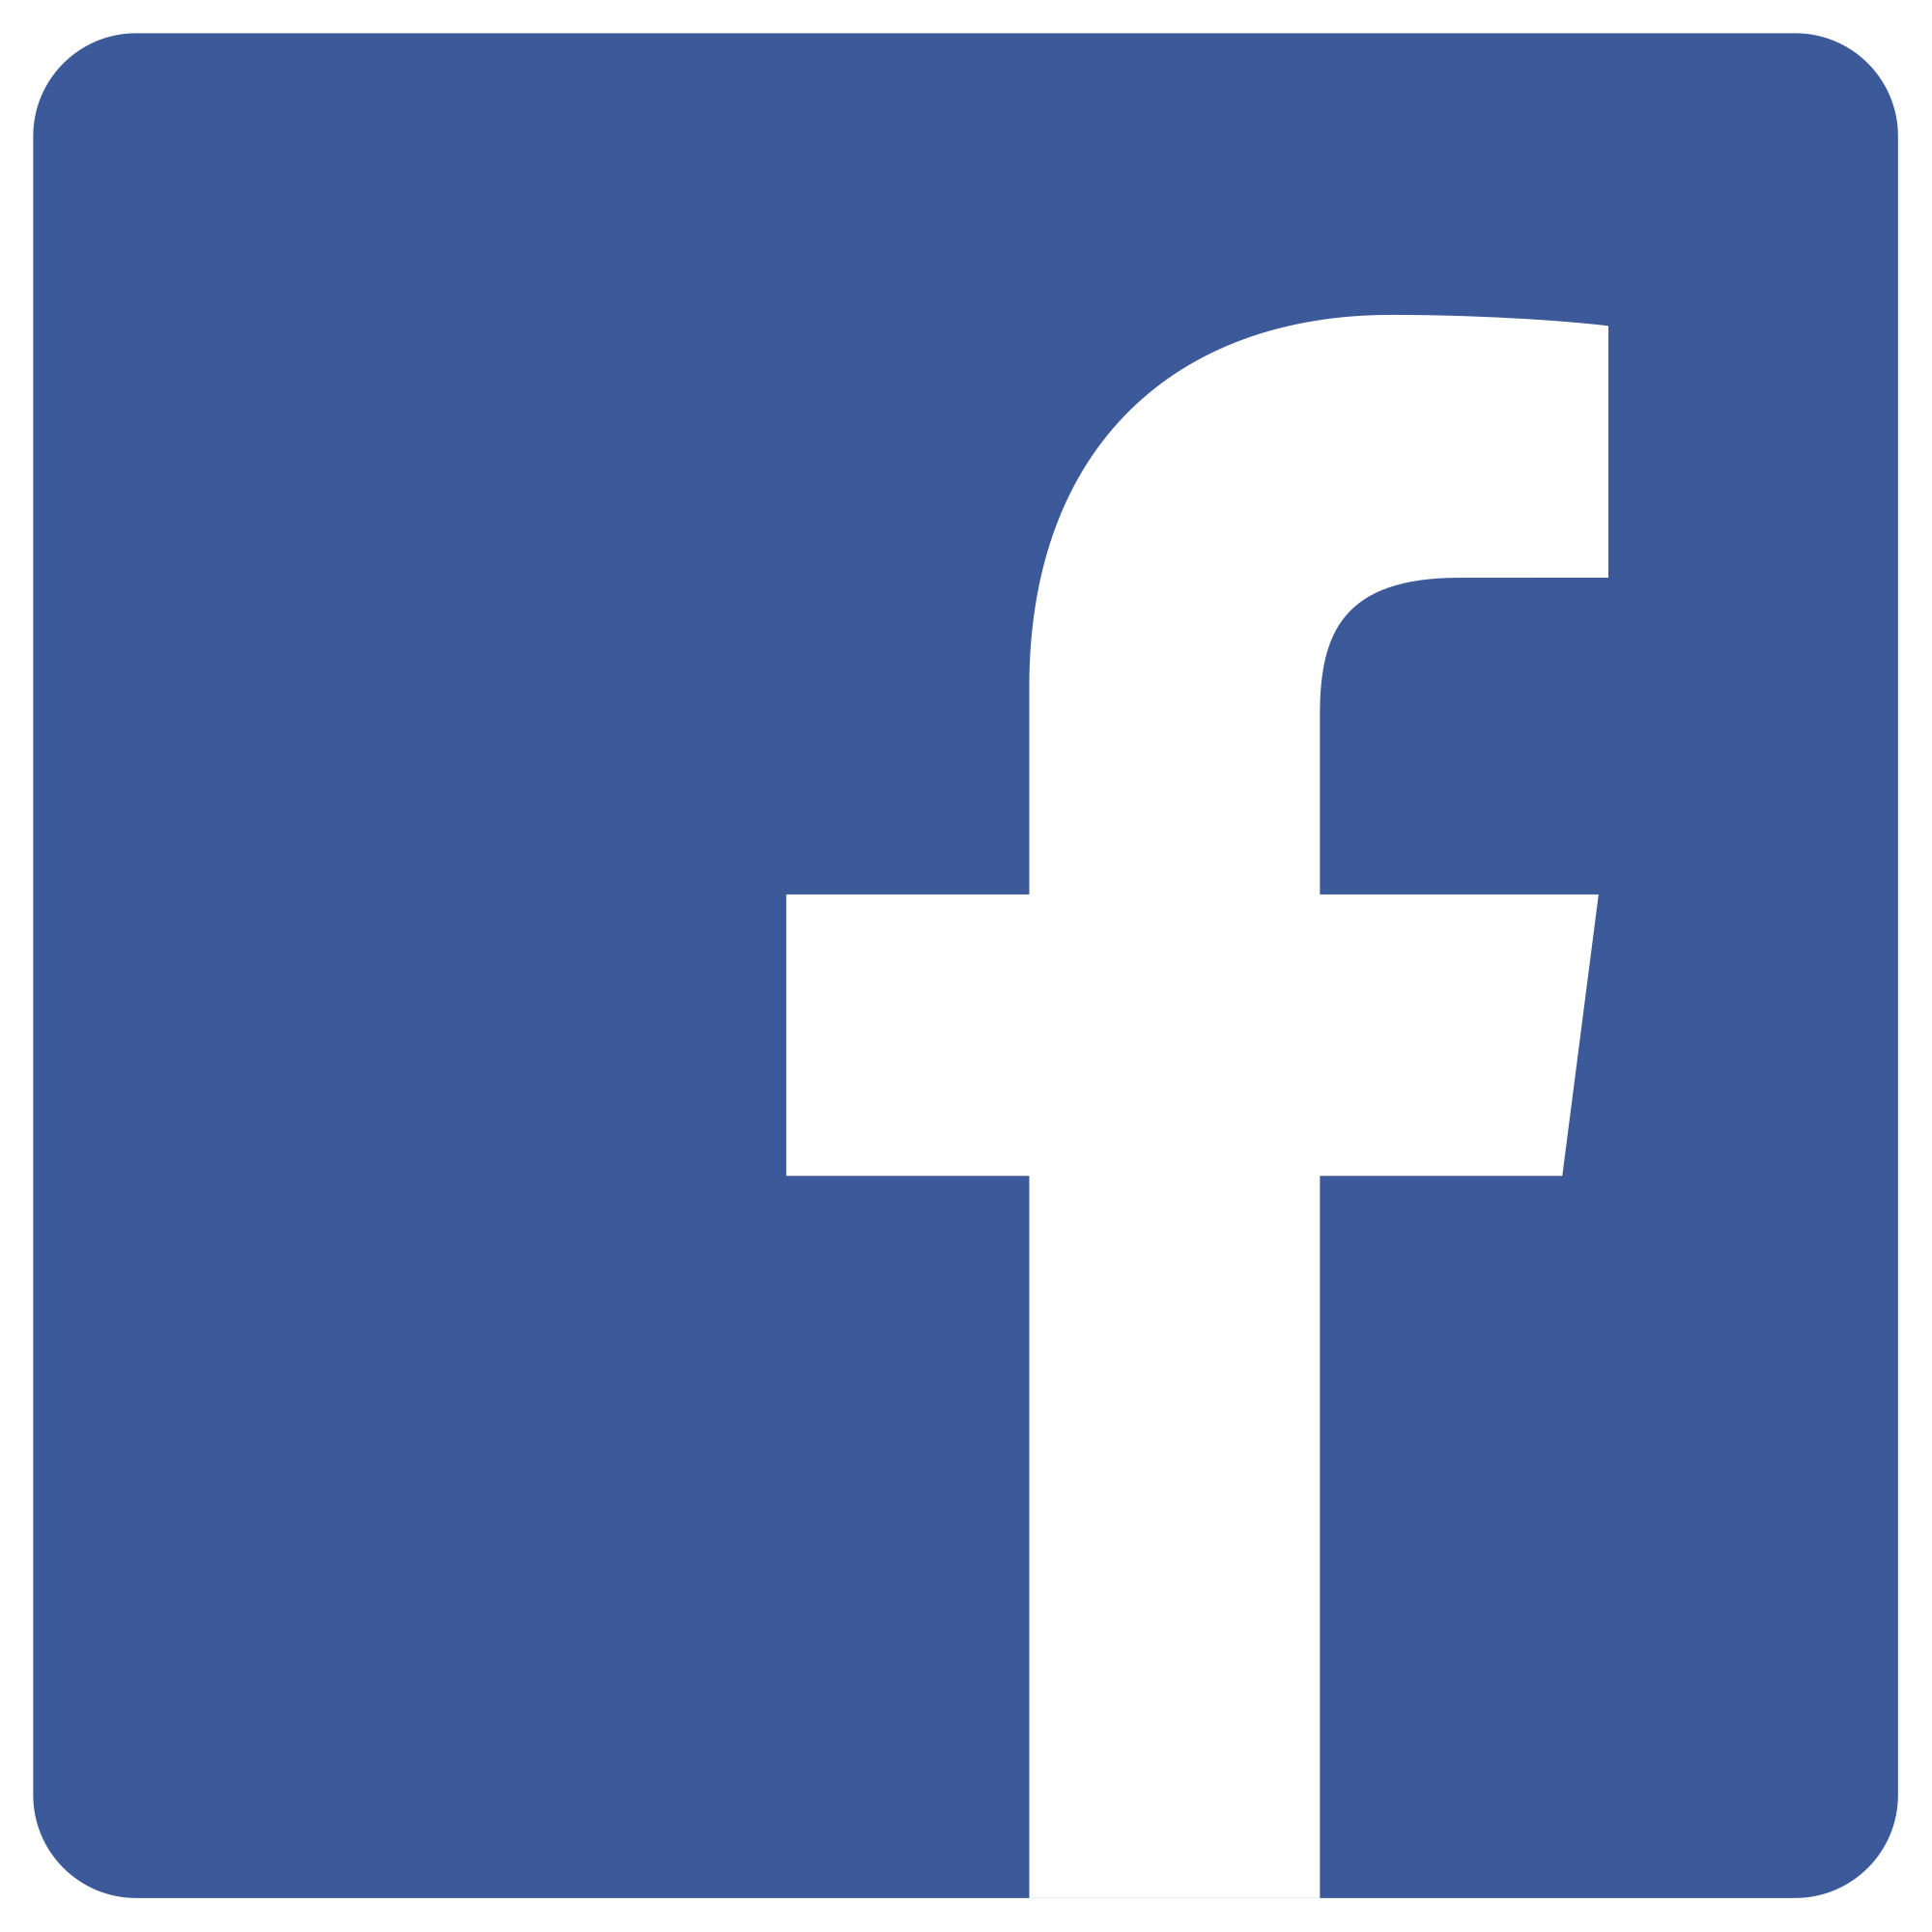 facebook clipart jpeg